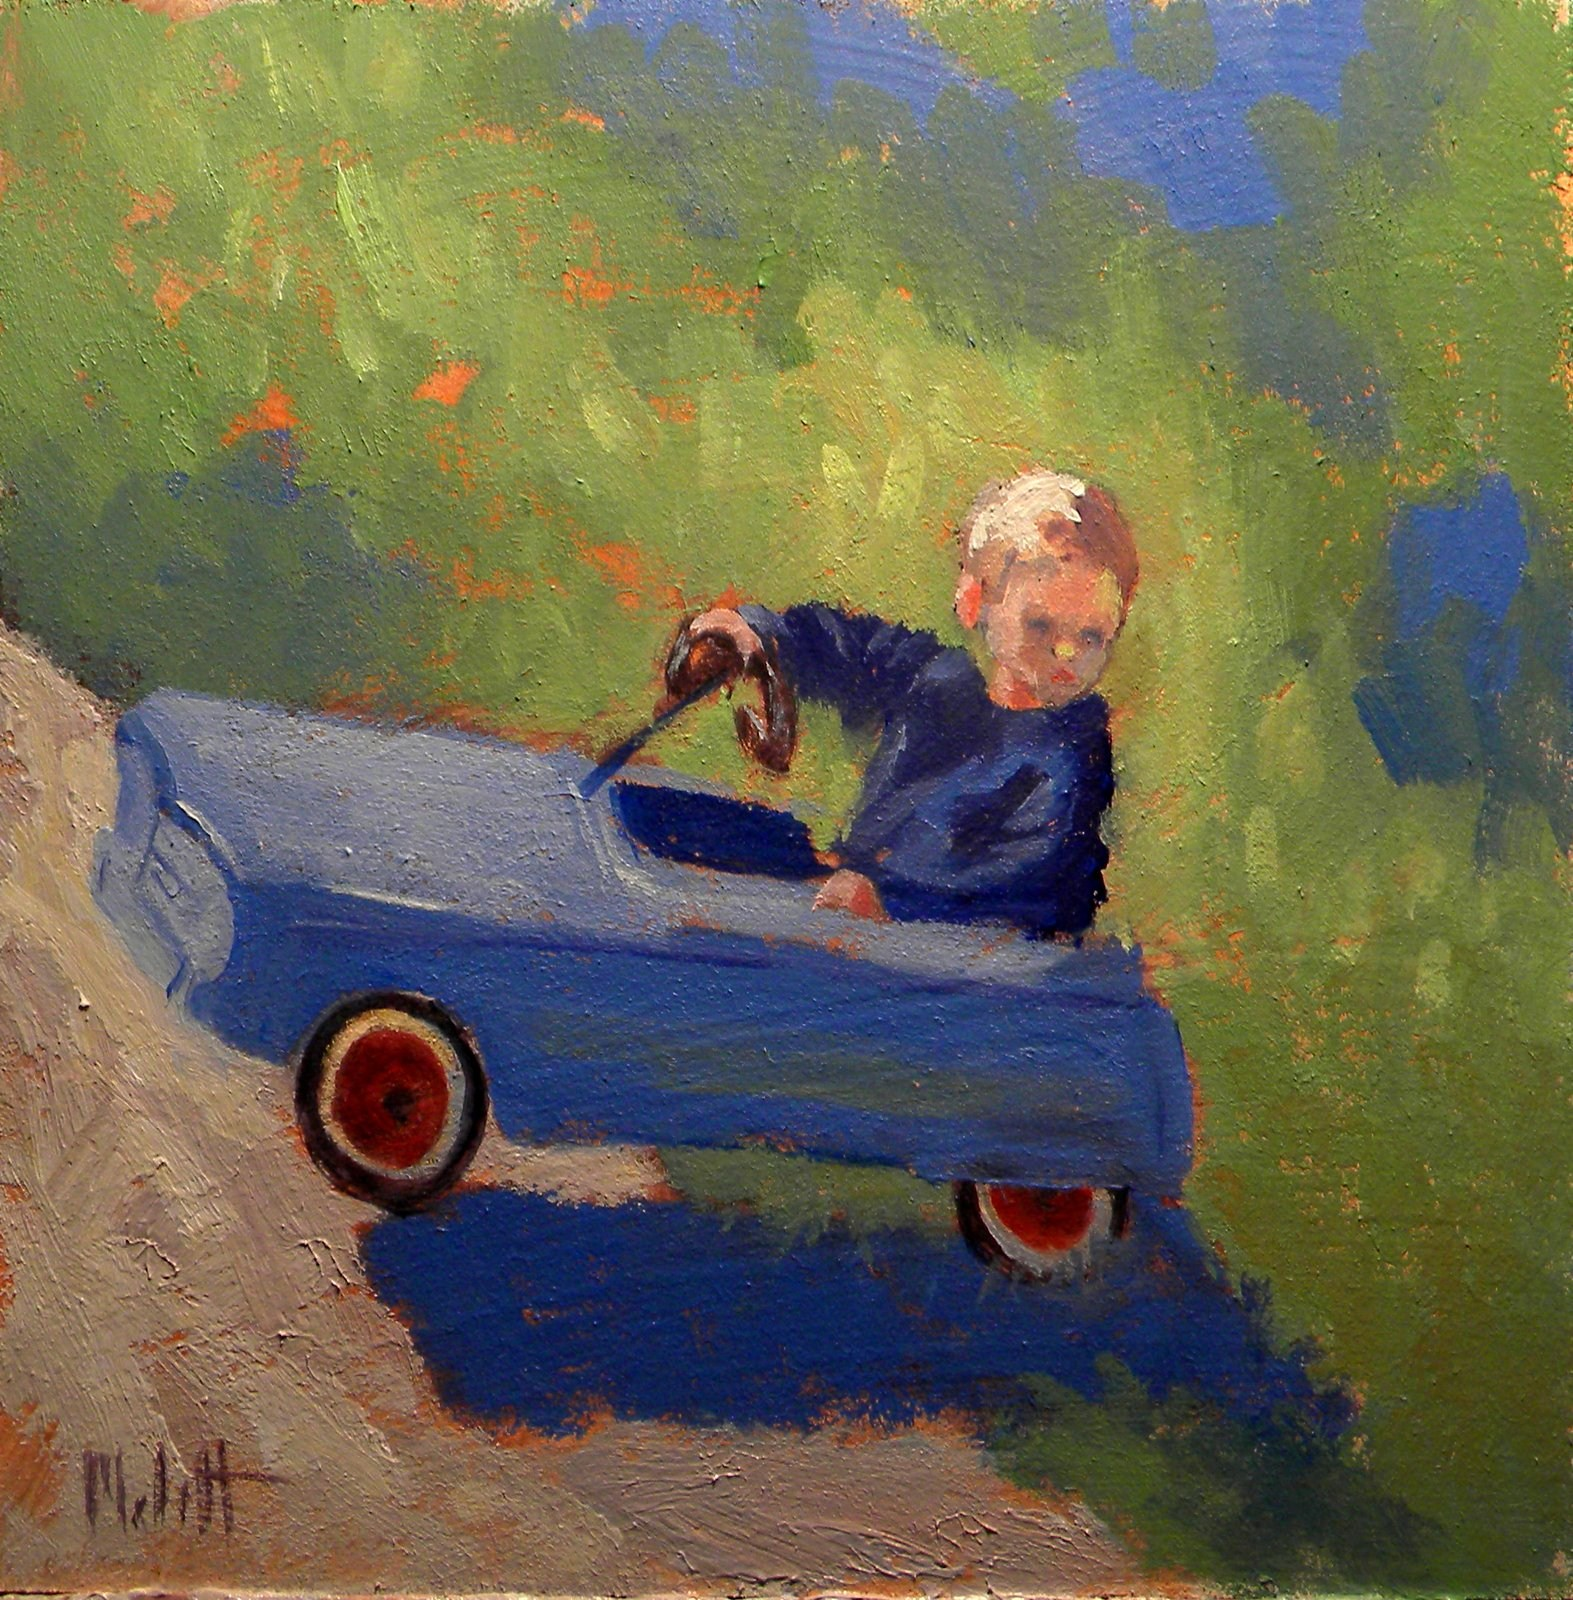 """Antique Toy Car Child Contemporary Impressionist Painting"" original fine art by Heidi Malott"